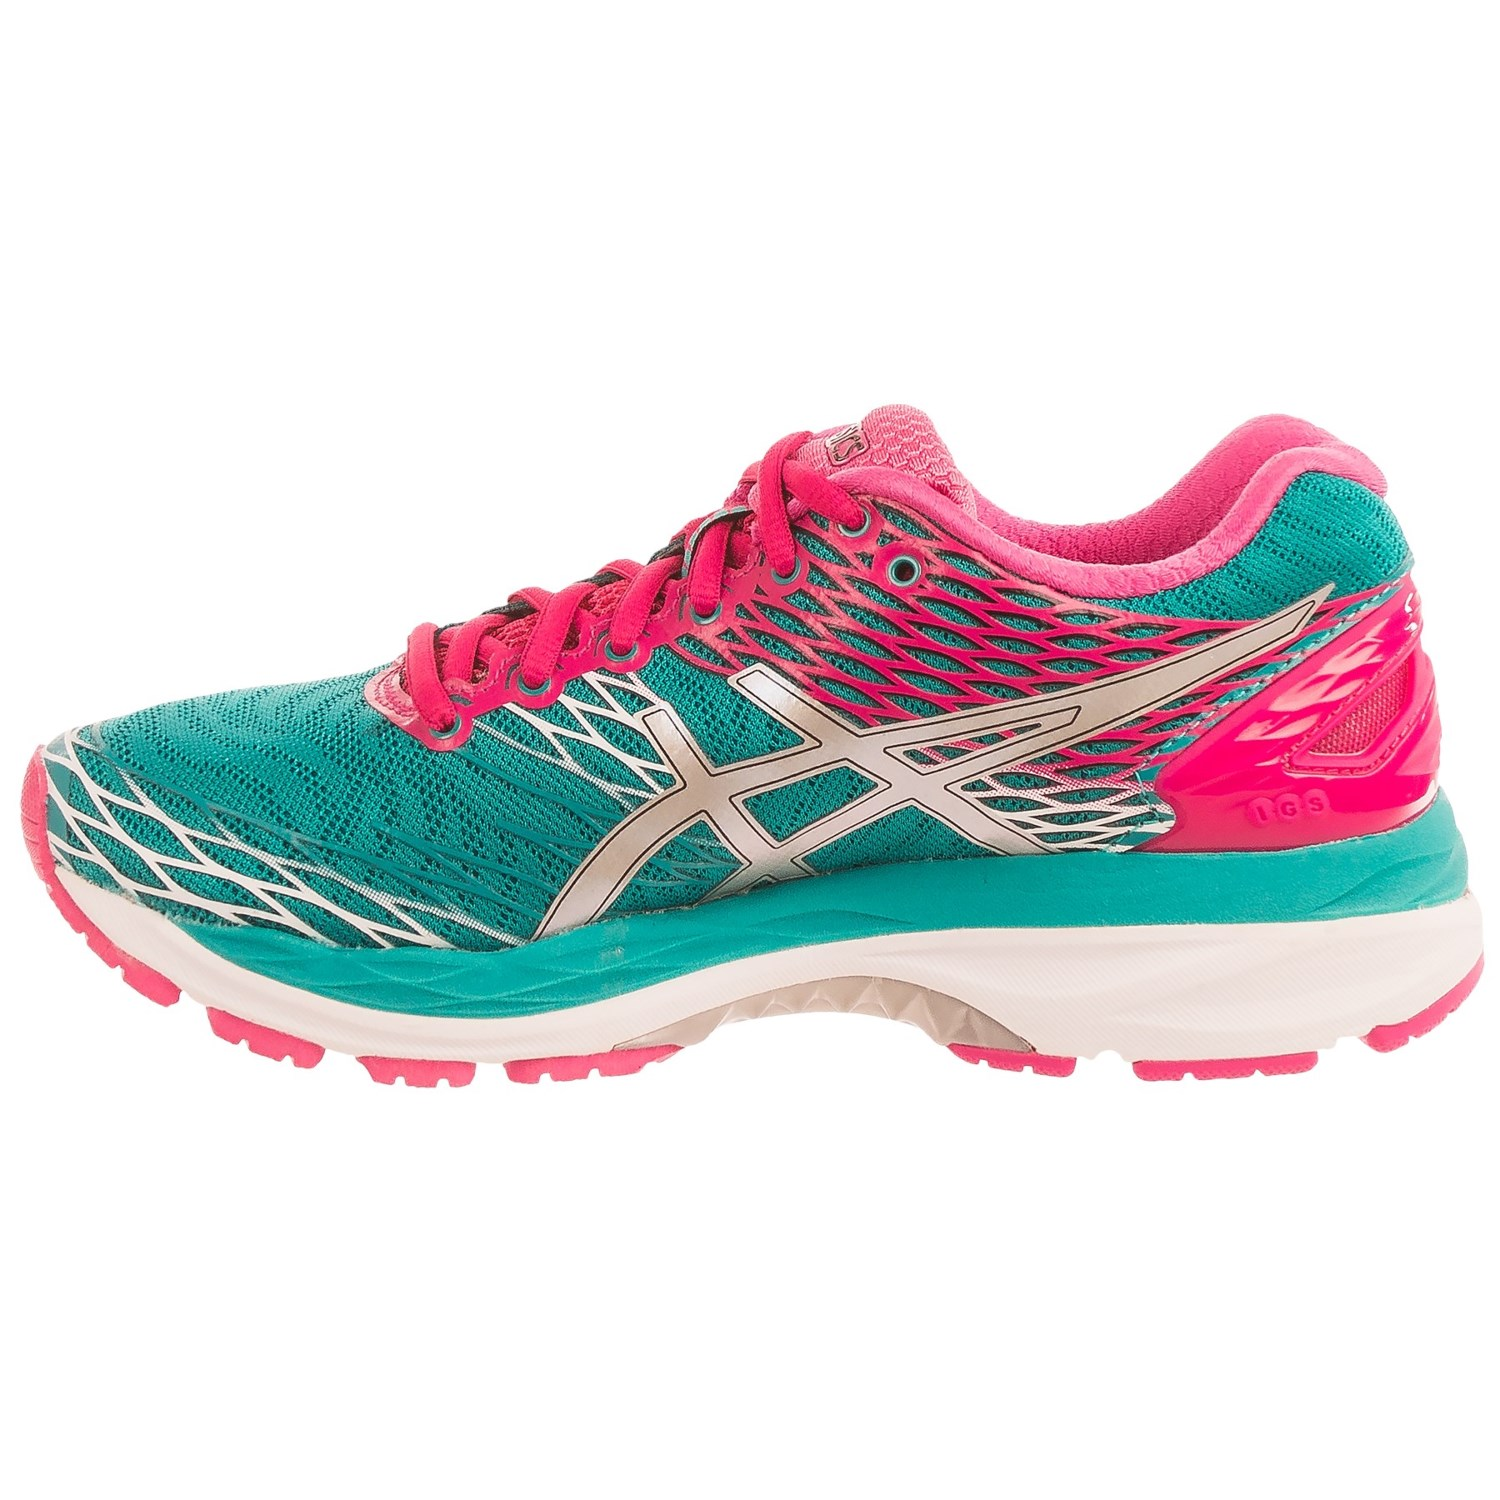 asics gel nimbus 18 running shoes for women save 58. Black Bedroom Furniture Sets. Home Design Ideas